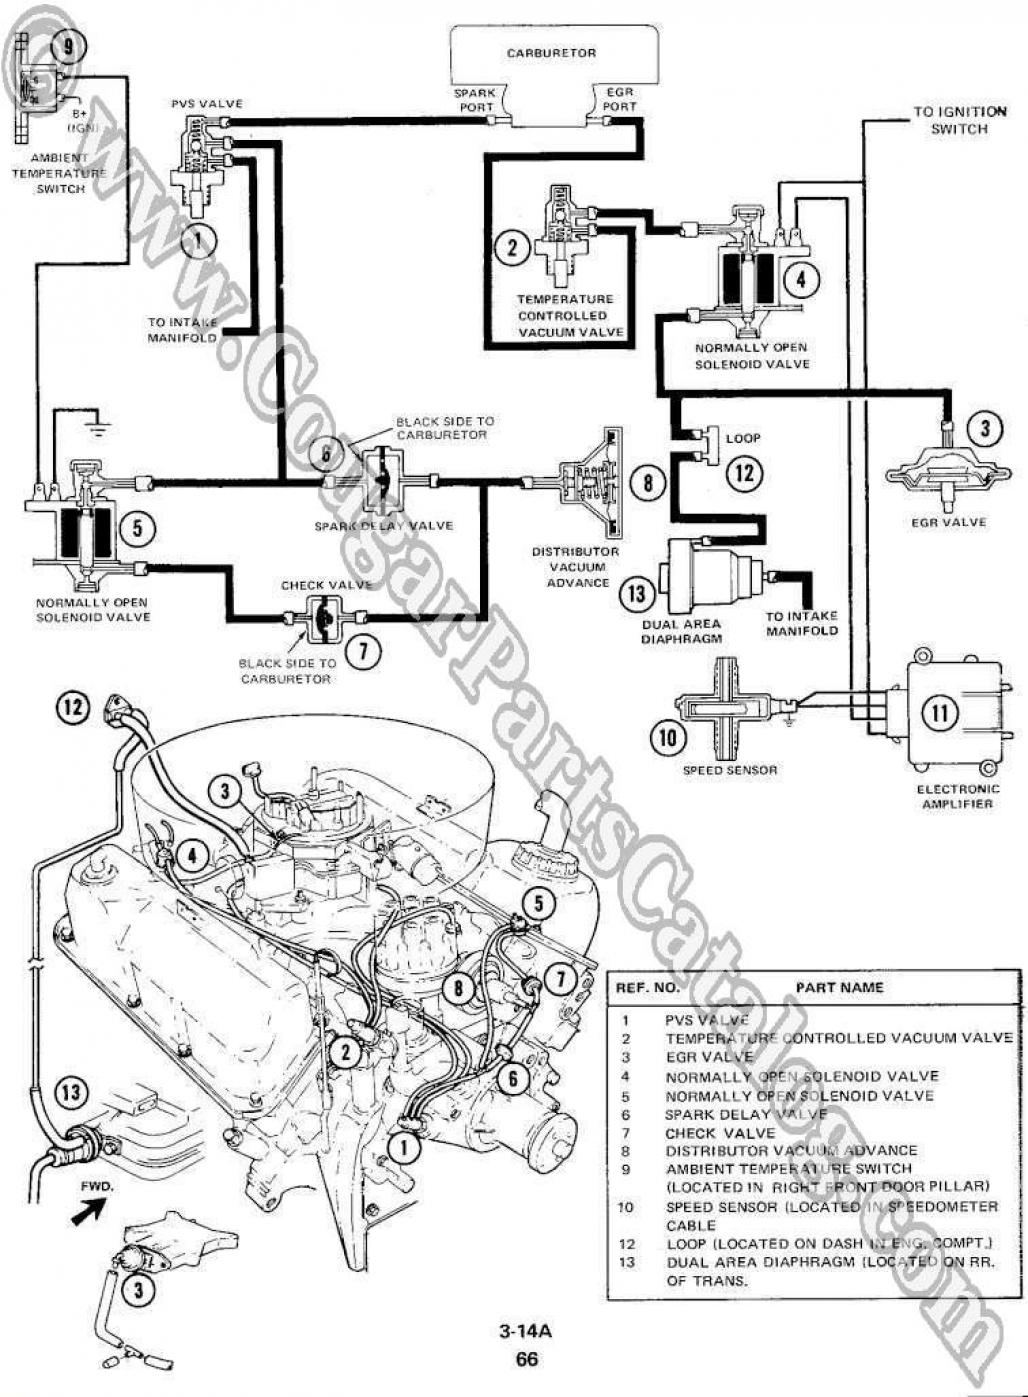 ford ranger timing belt replacement on 91 mustang engine diagram